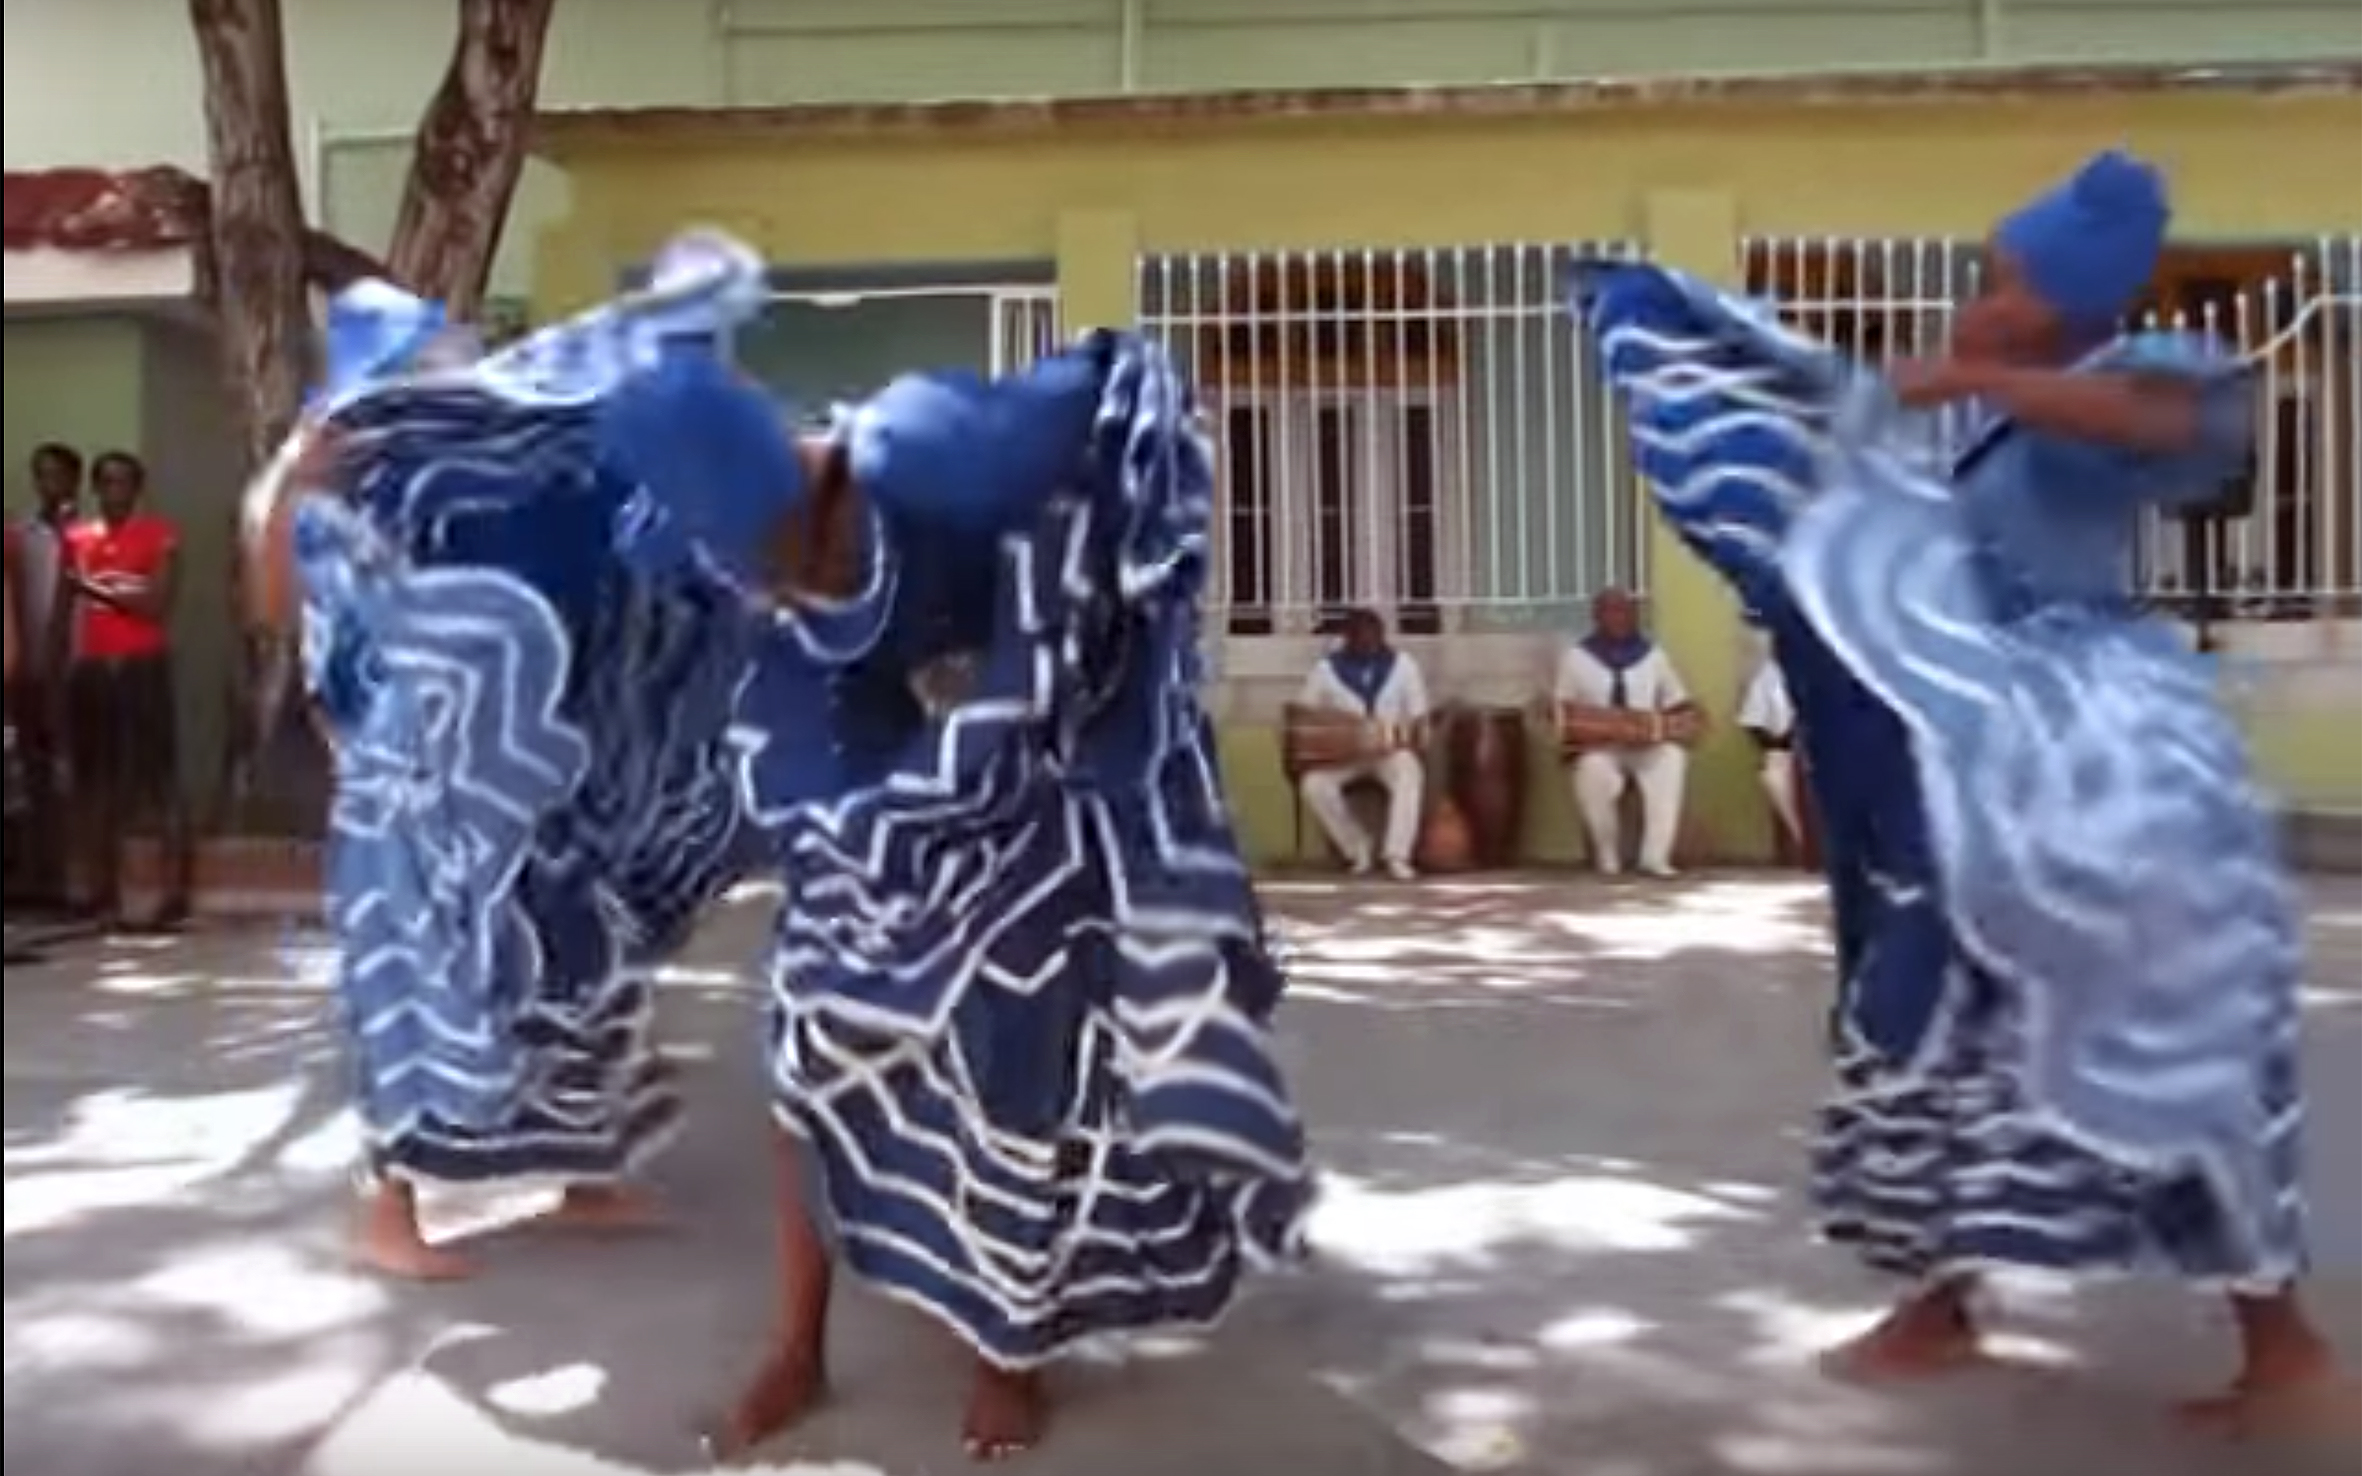 977.Yemaya DANCE / Cuba - Yemaya DANCE is one of the Orisha dances. Yemaya is the mother of all, she is the goddess of the ocean and one of the most powerful Orishas, associated with the moon, the ocean and feminine mysteries. She is the goddess of life. Her dance alludes to female wisdom and the power of community. The cycle of life, healing and vicious properties of water are all present in her dance.